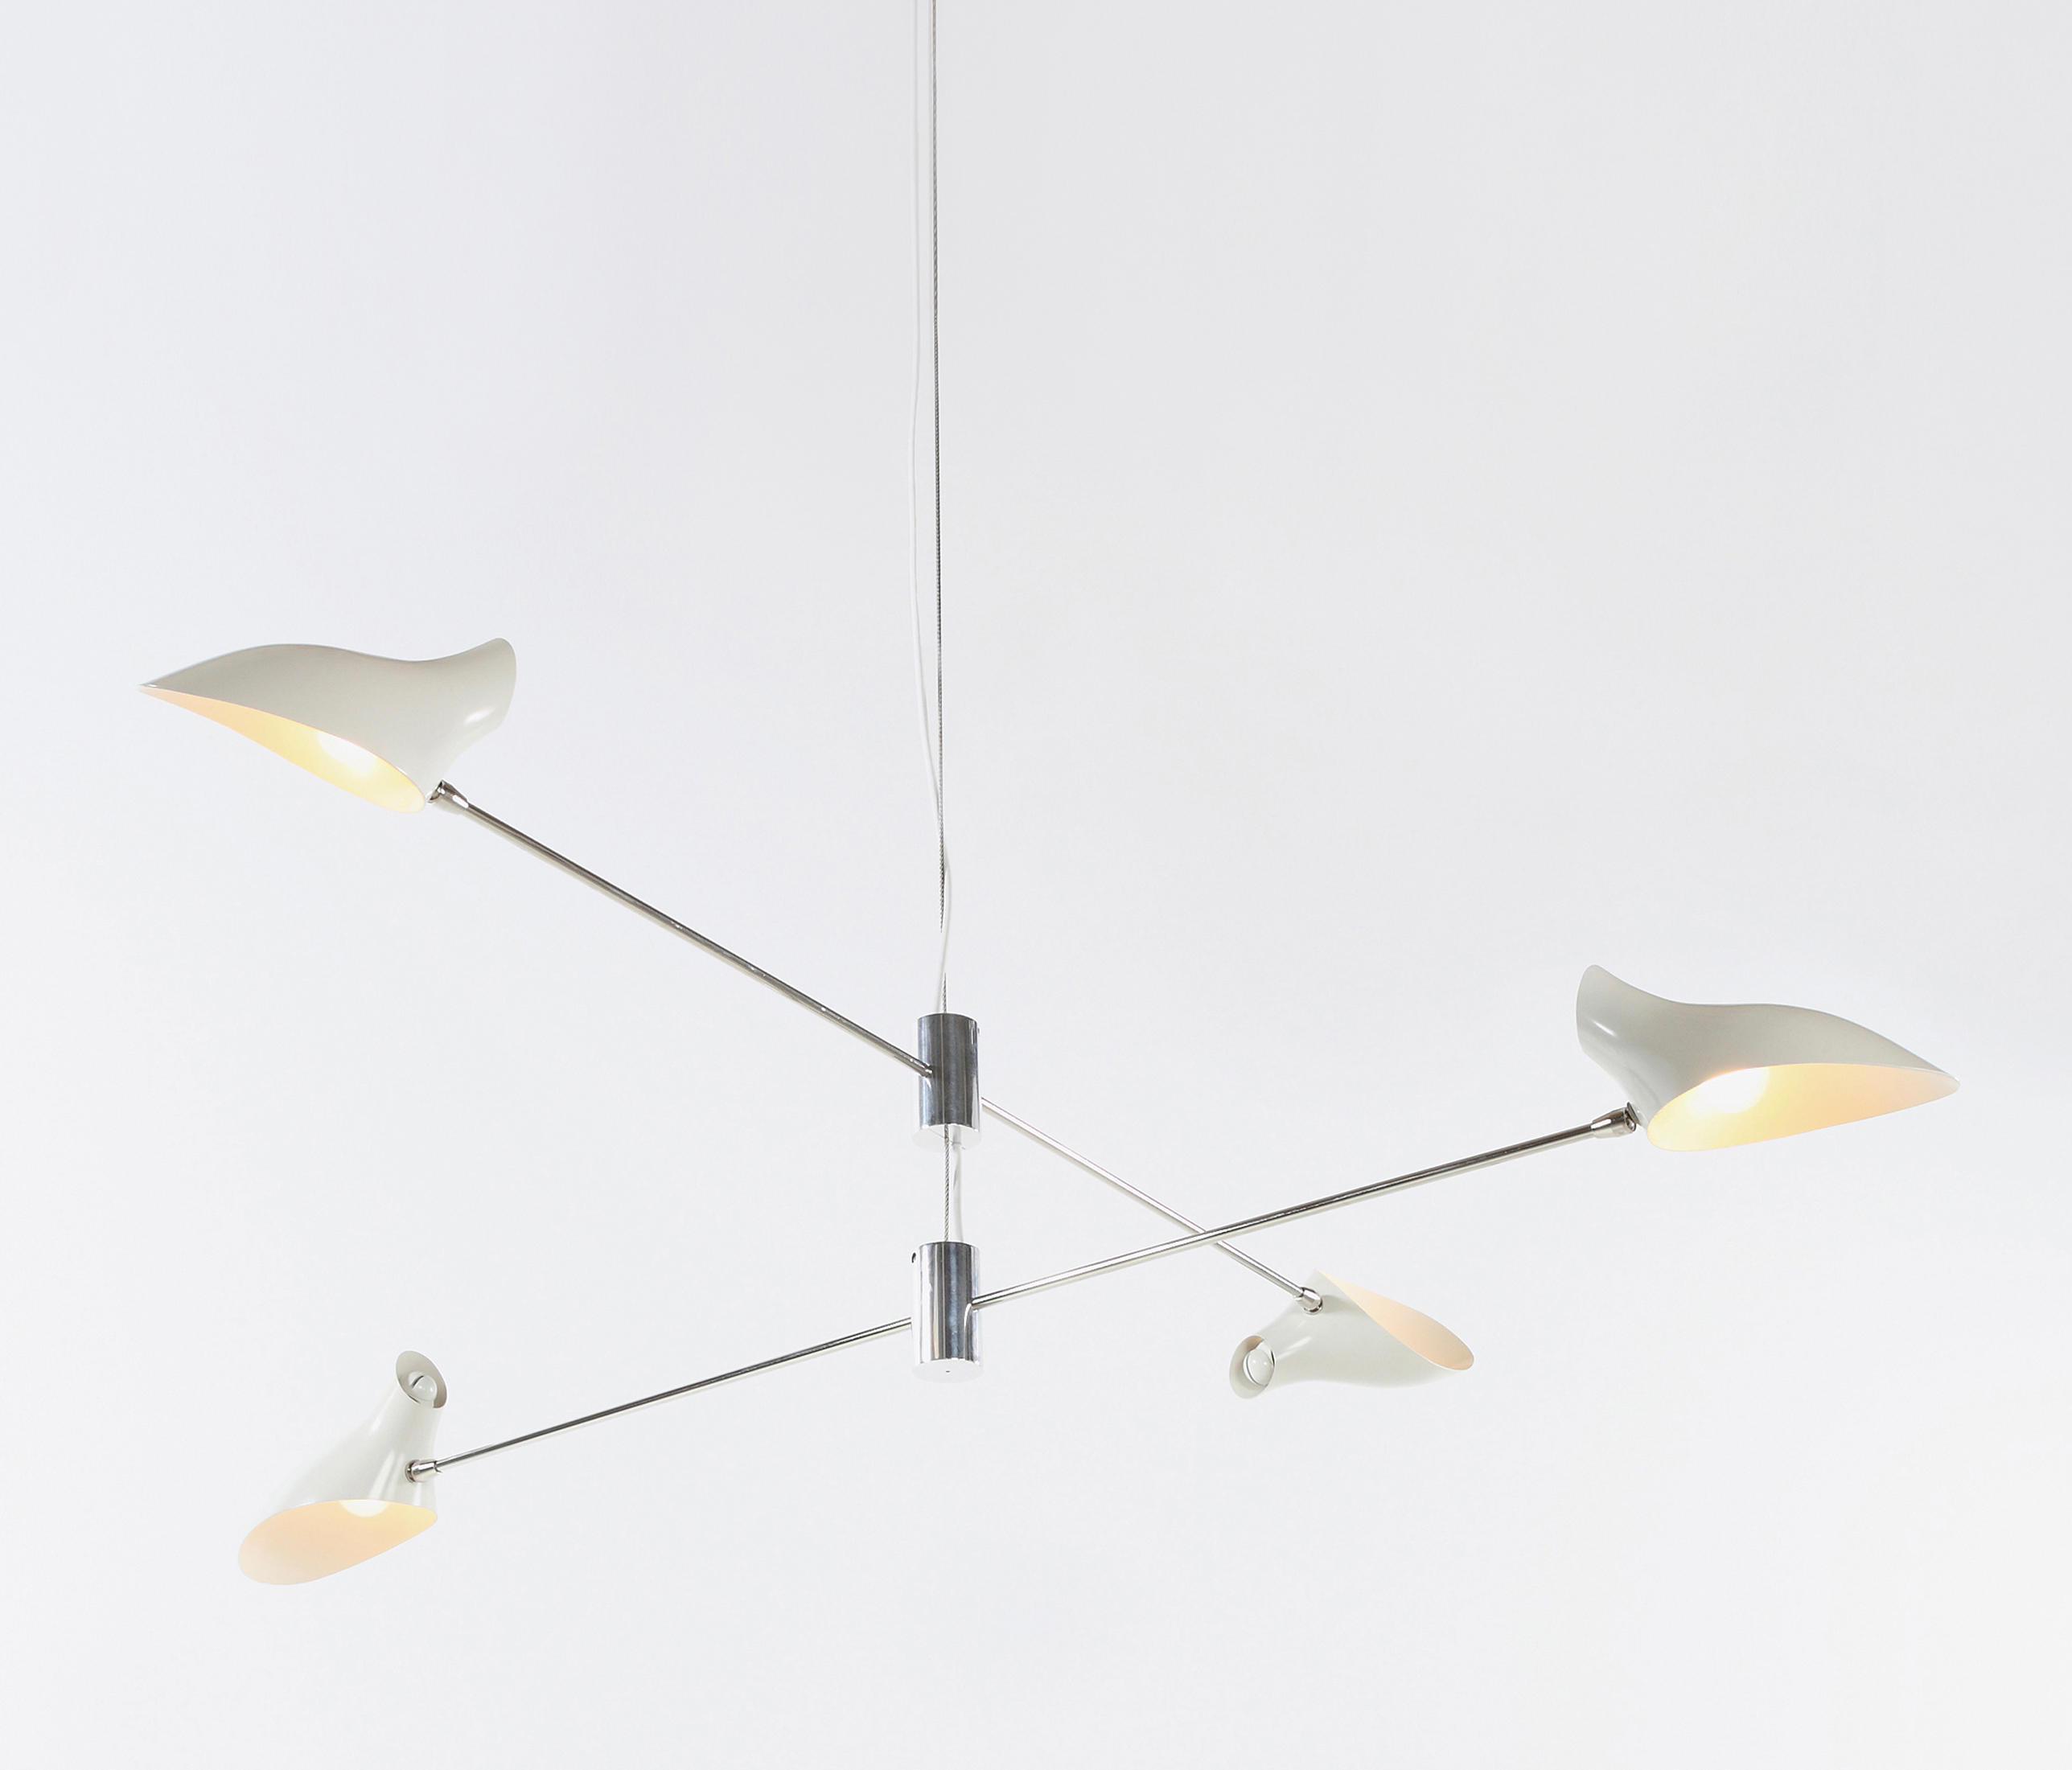 Cross Cable No 407 By David Weeks Studio Suspended Lights